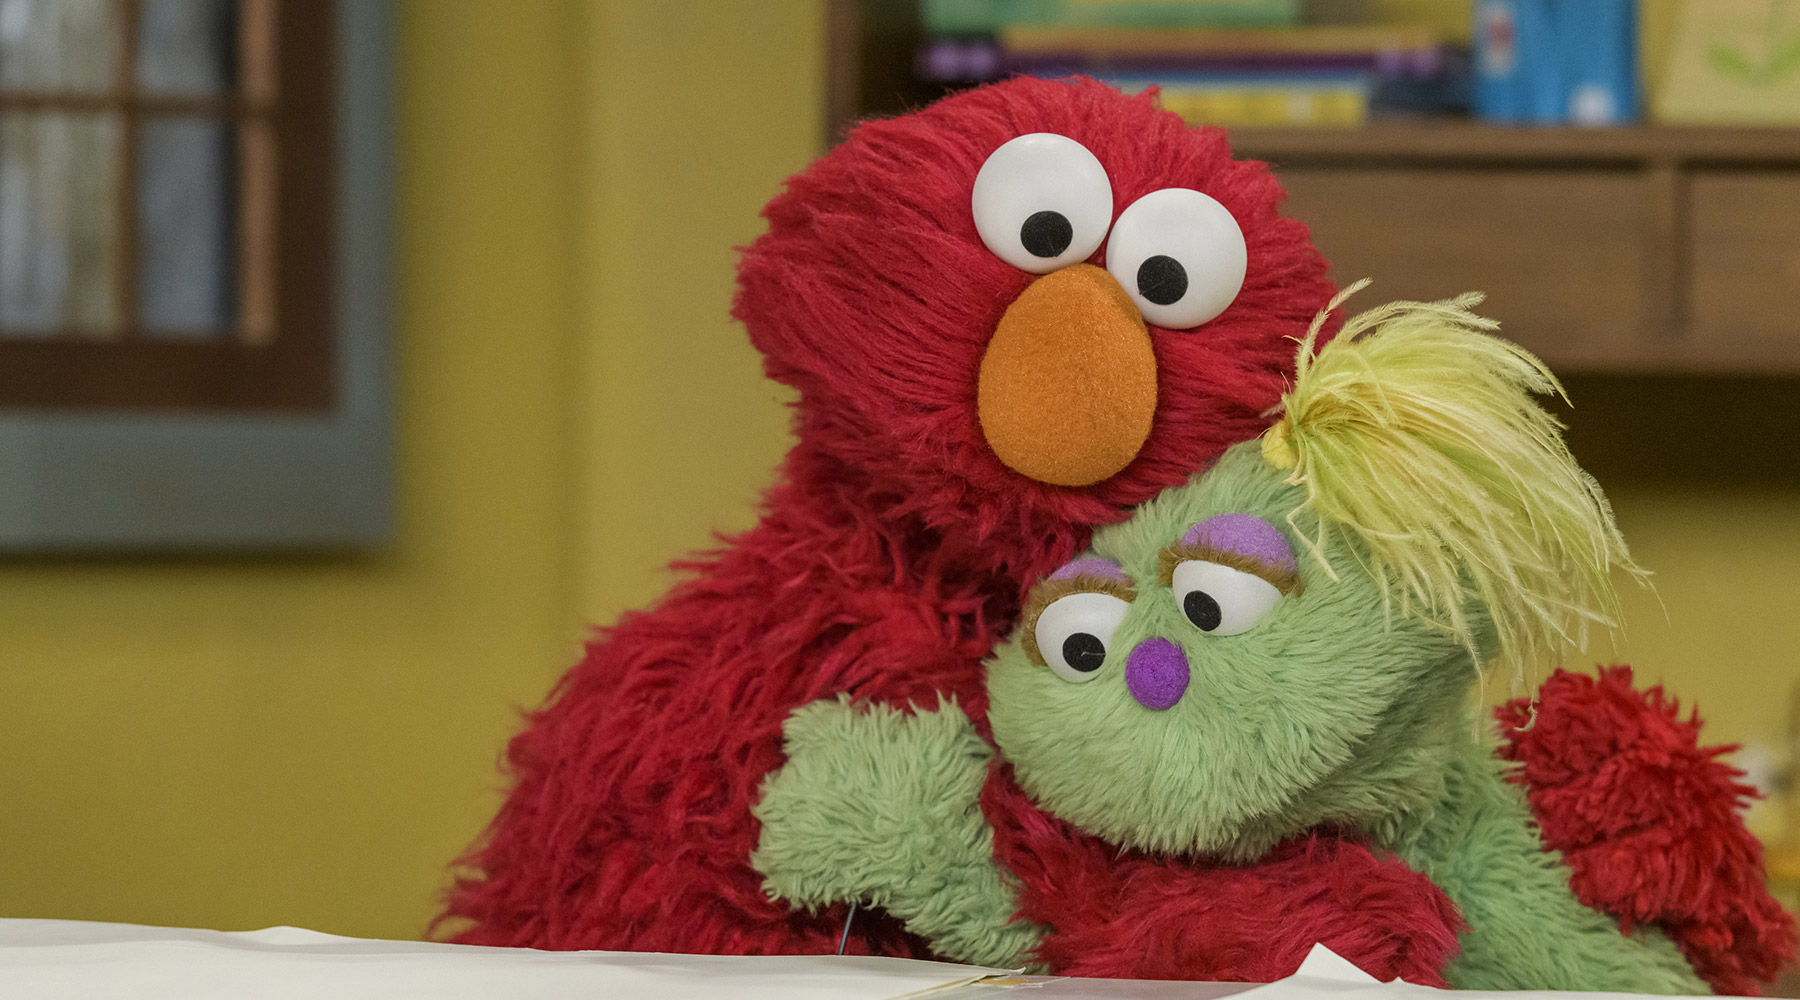 Meet Karli! Sesame Street Introduces New Muppet Who's in Foster Care & Lives with 'For-Now Parents'